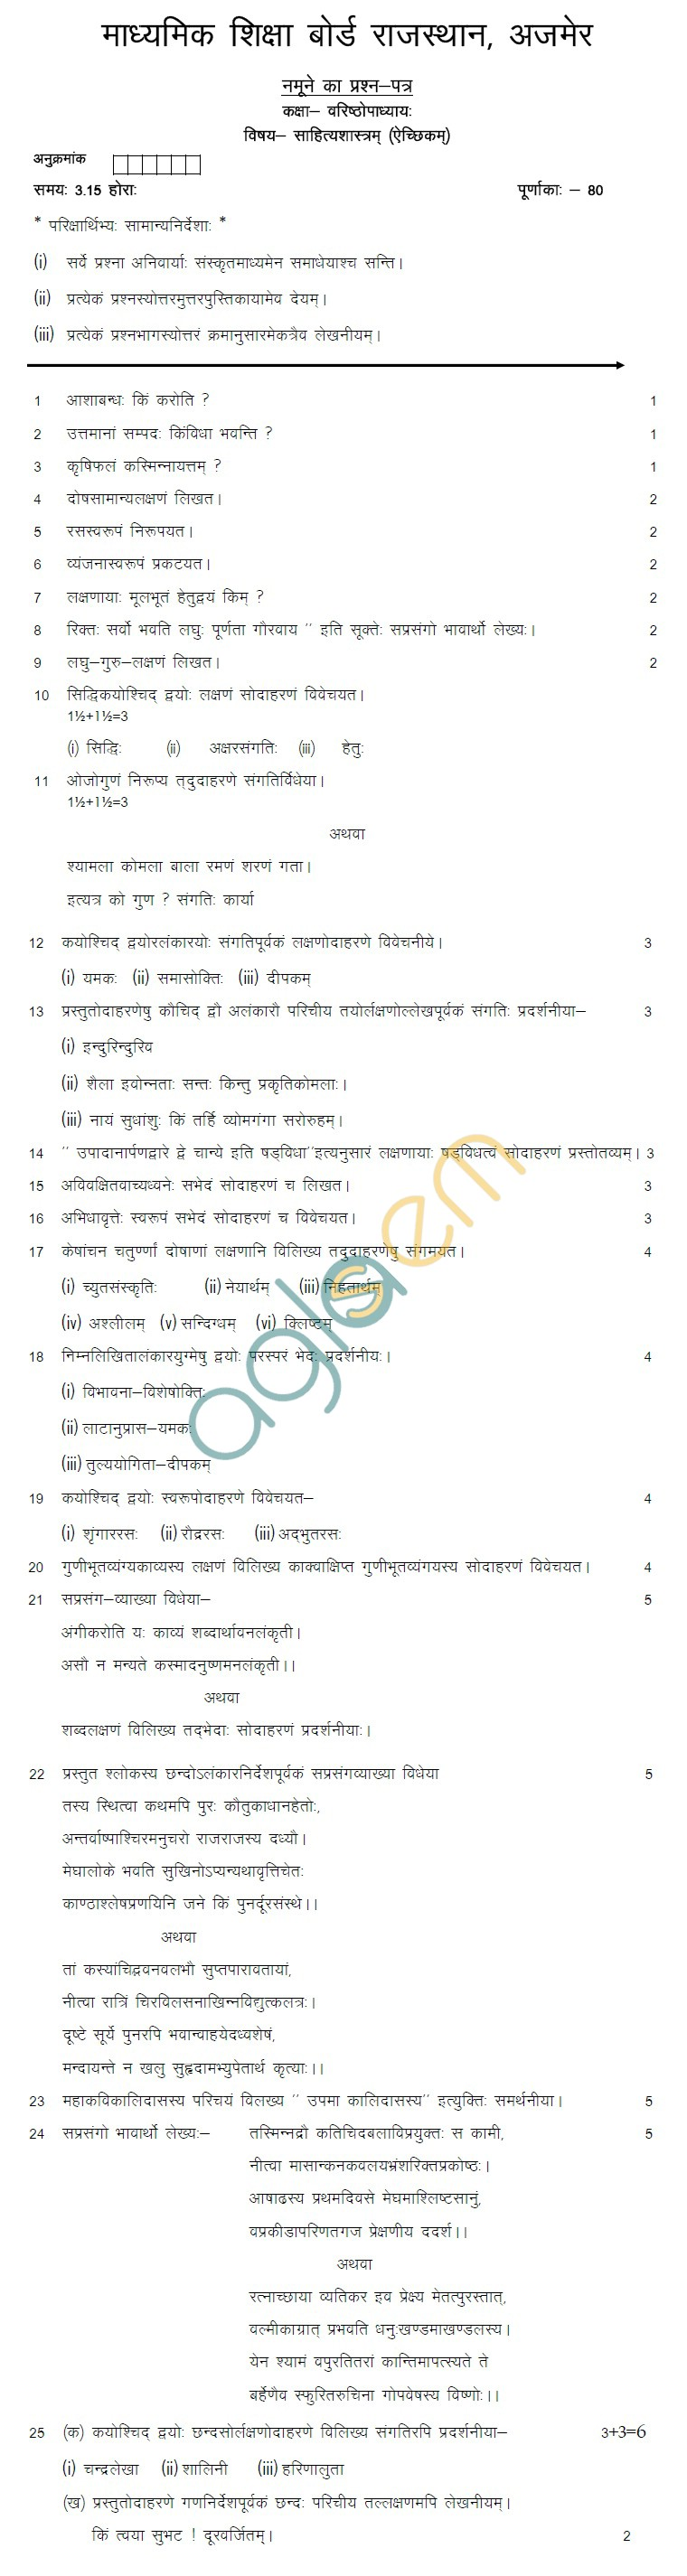 Rajasthan Board Class 12 Sahitya Shastra Model Question Paper